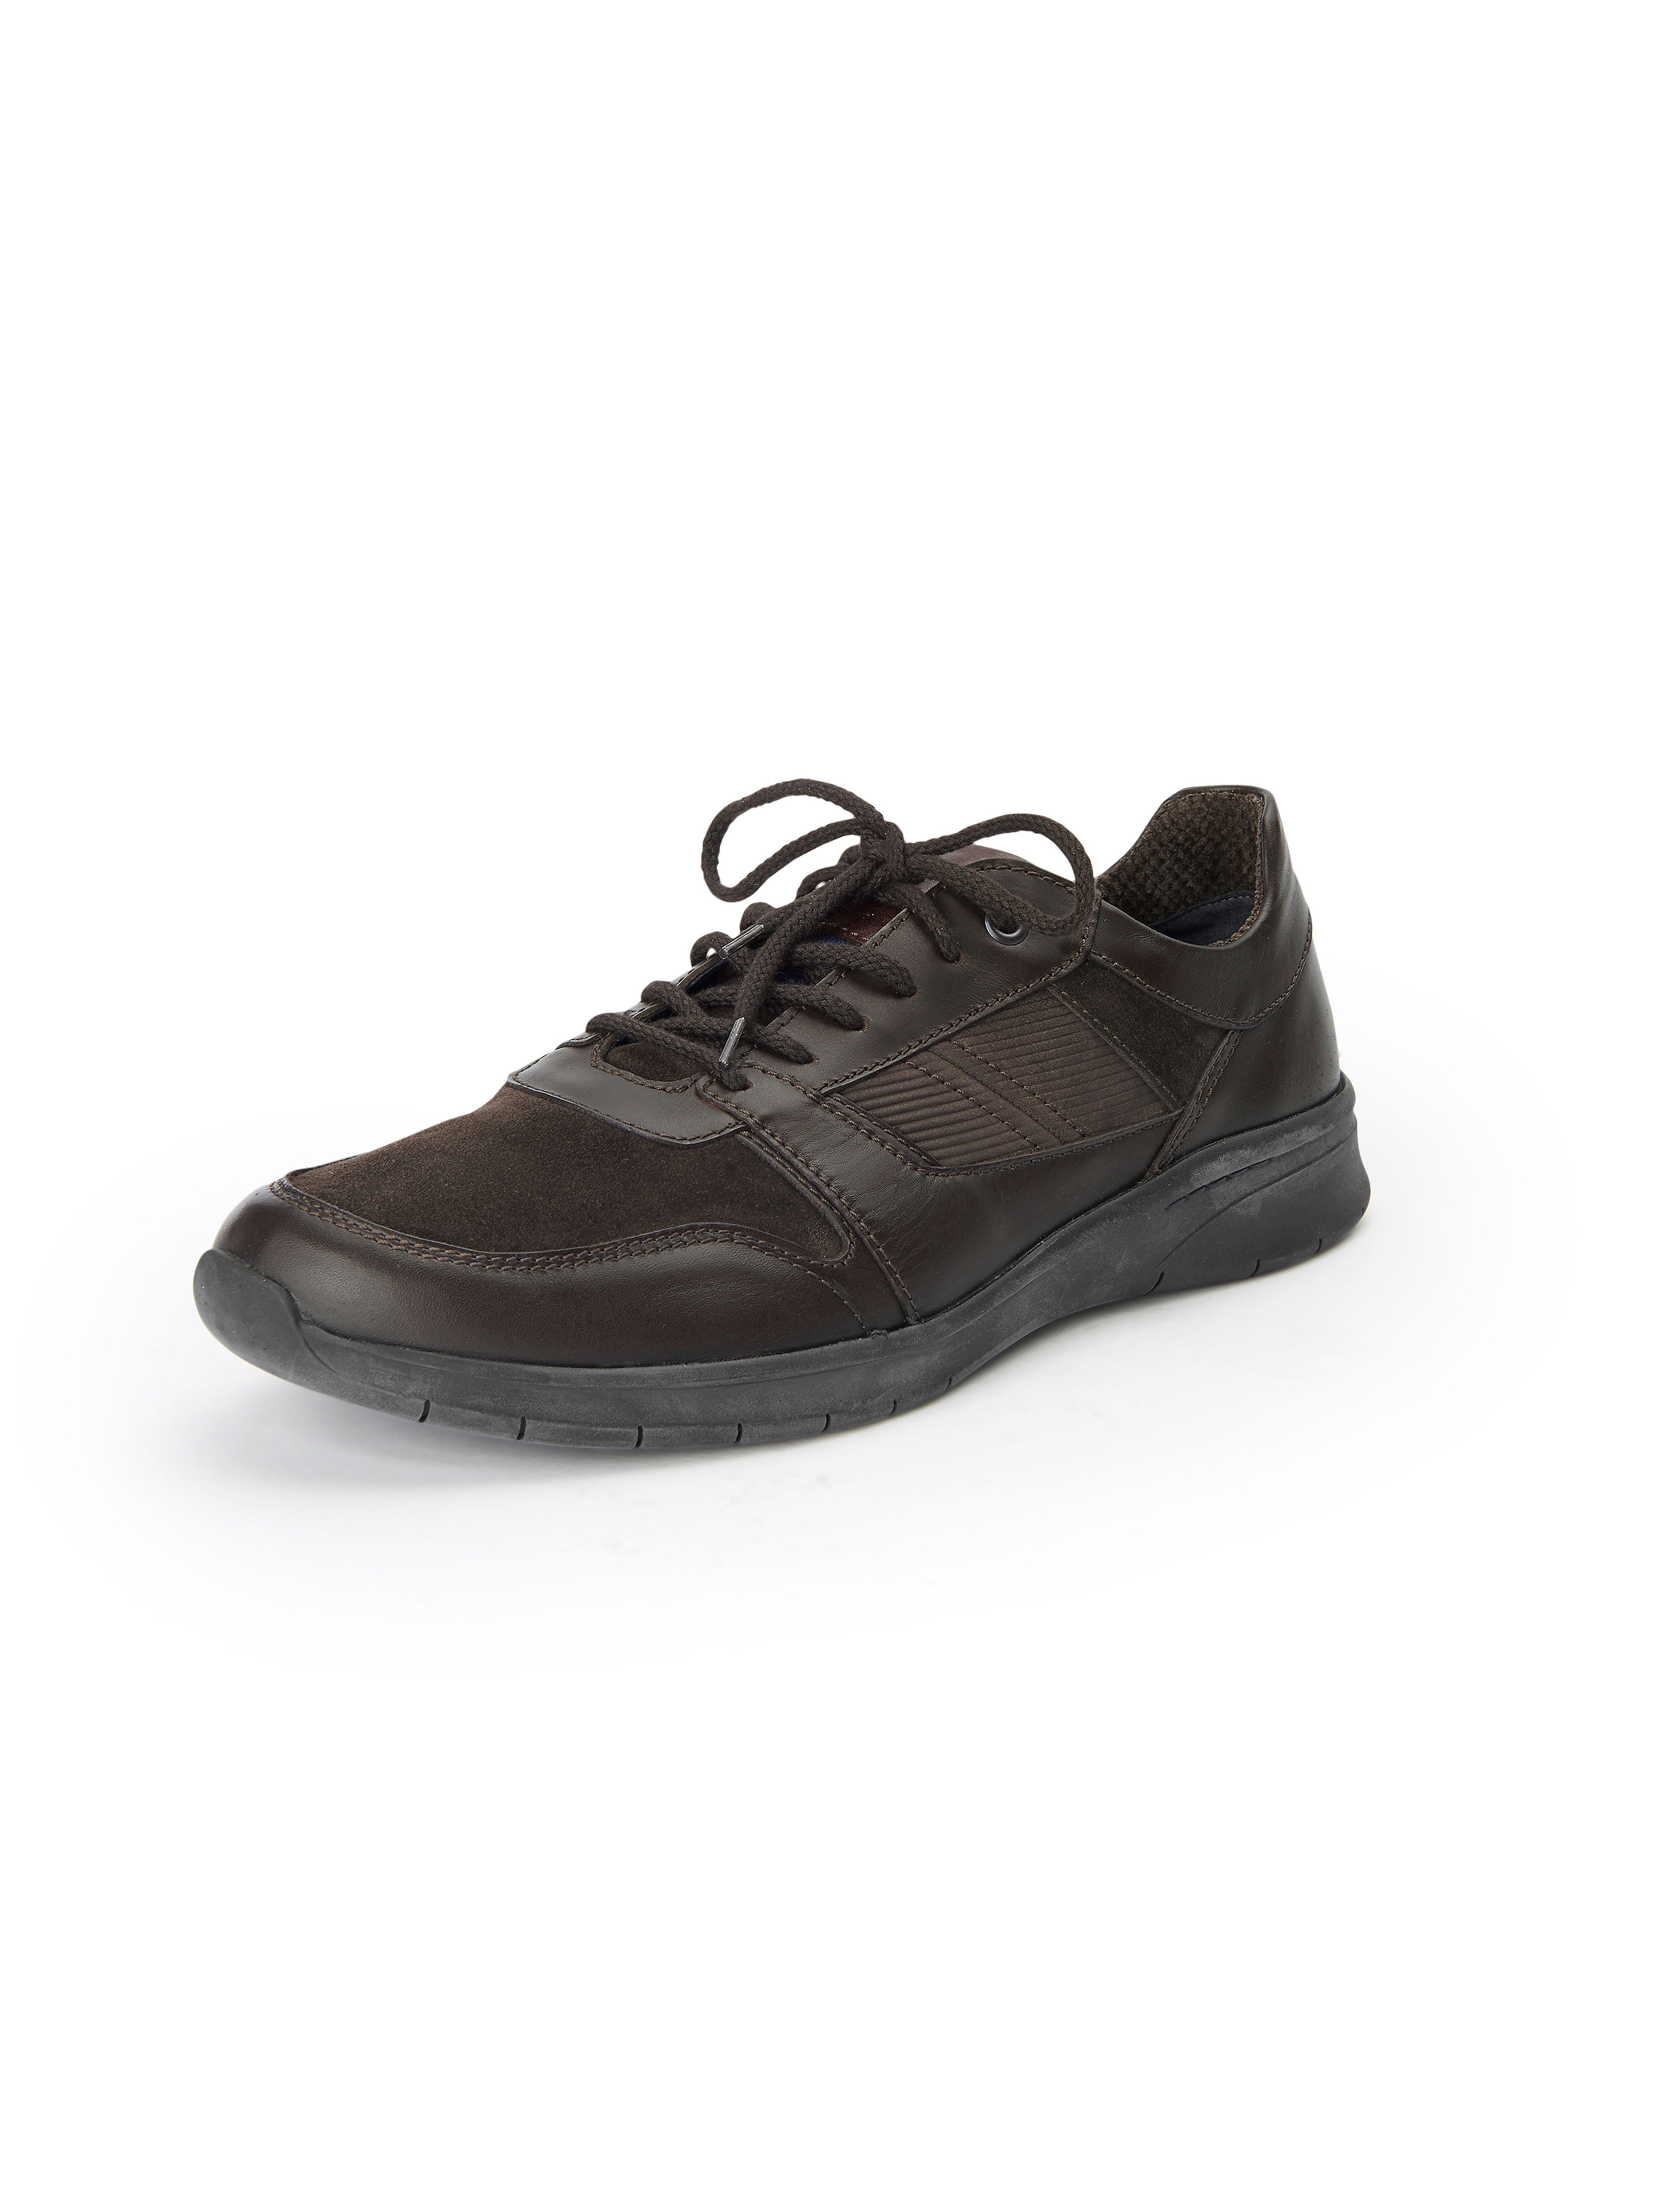 Image of   Sneakers Heimito 100% skind Fra Sioux brun